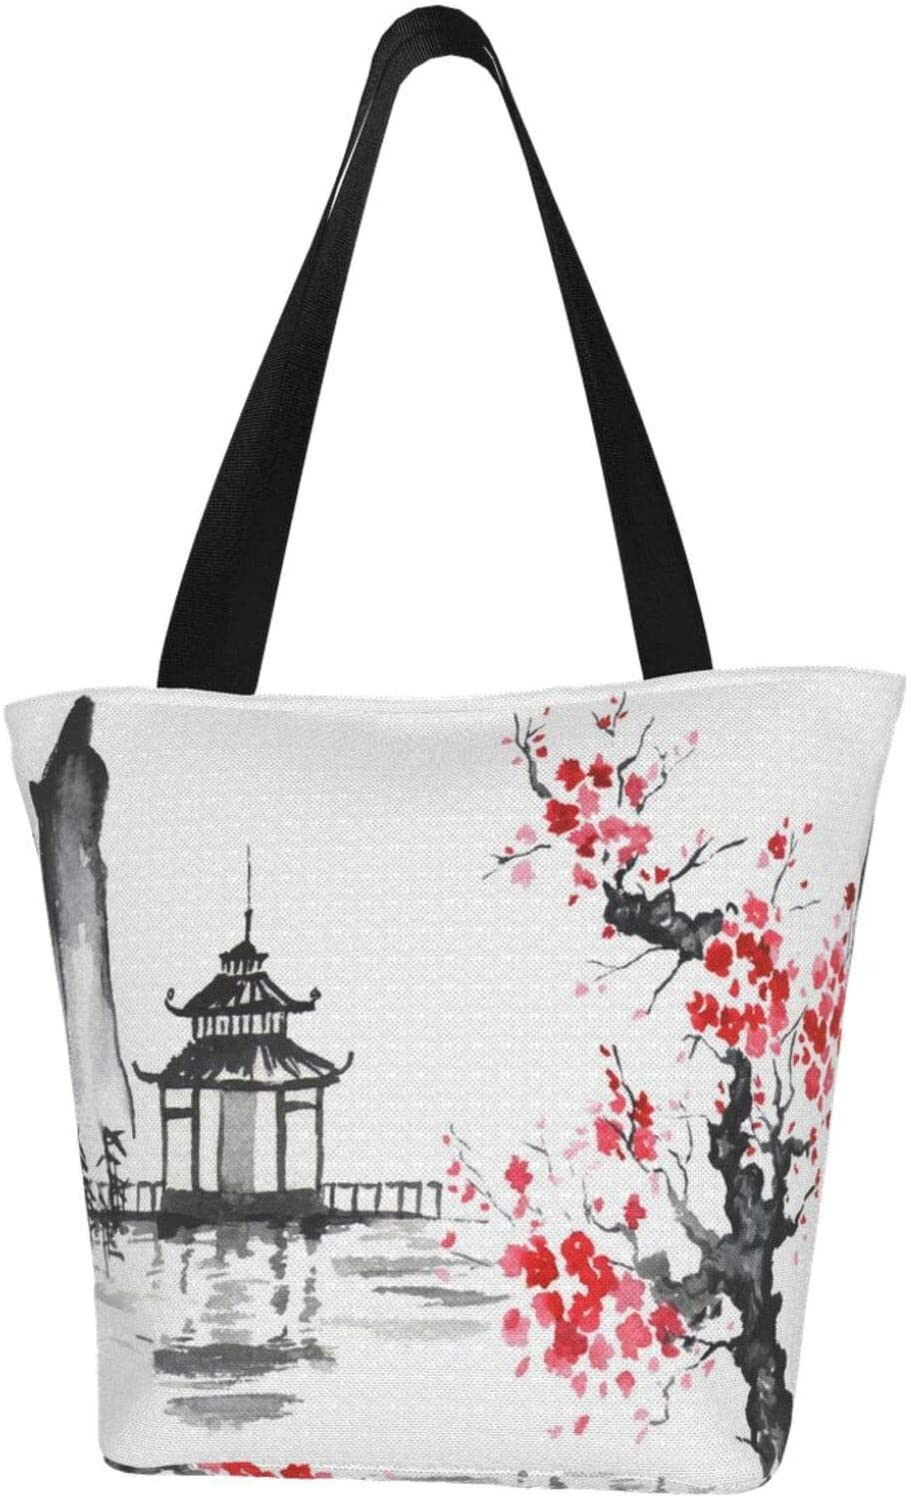 Reusable Traditional Japanese Mountain Cherry Blossom Canvas Tote Bag ,Durable Canvas Tote Bag with Interior Pocket ,Washable Foldable Canvas Tote Bag for Beach,Shipping,Groceries,Books